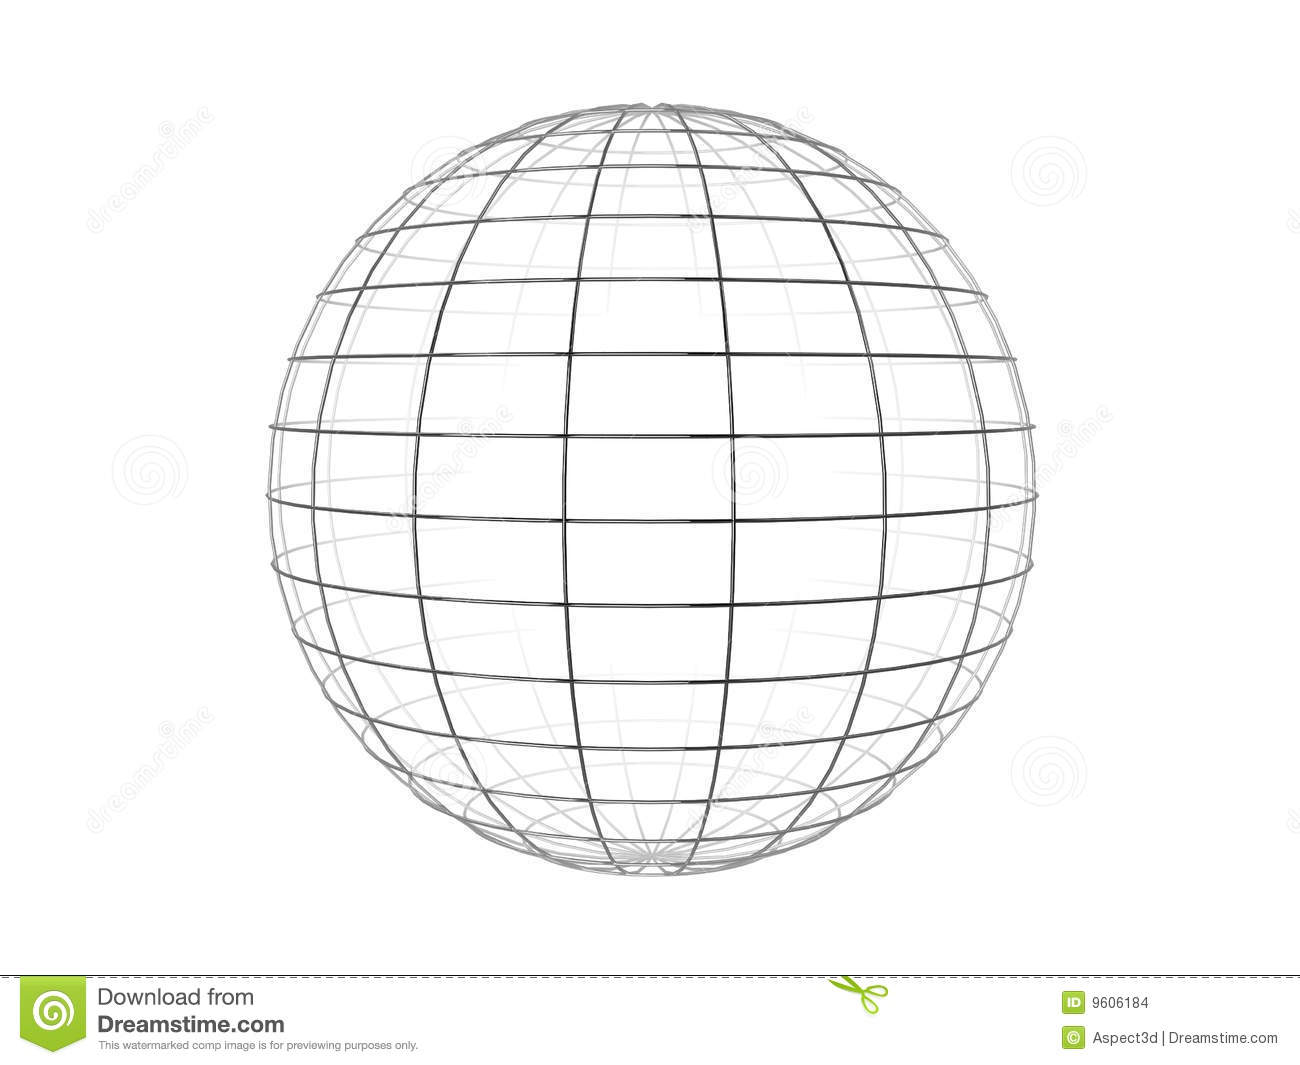 Illustration of a metallic wire frame sphere, isolated on a white ...